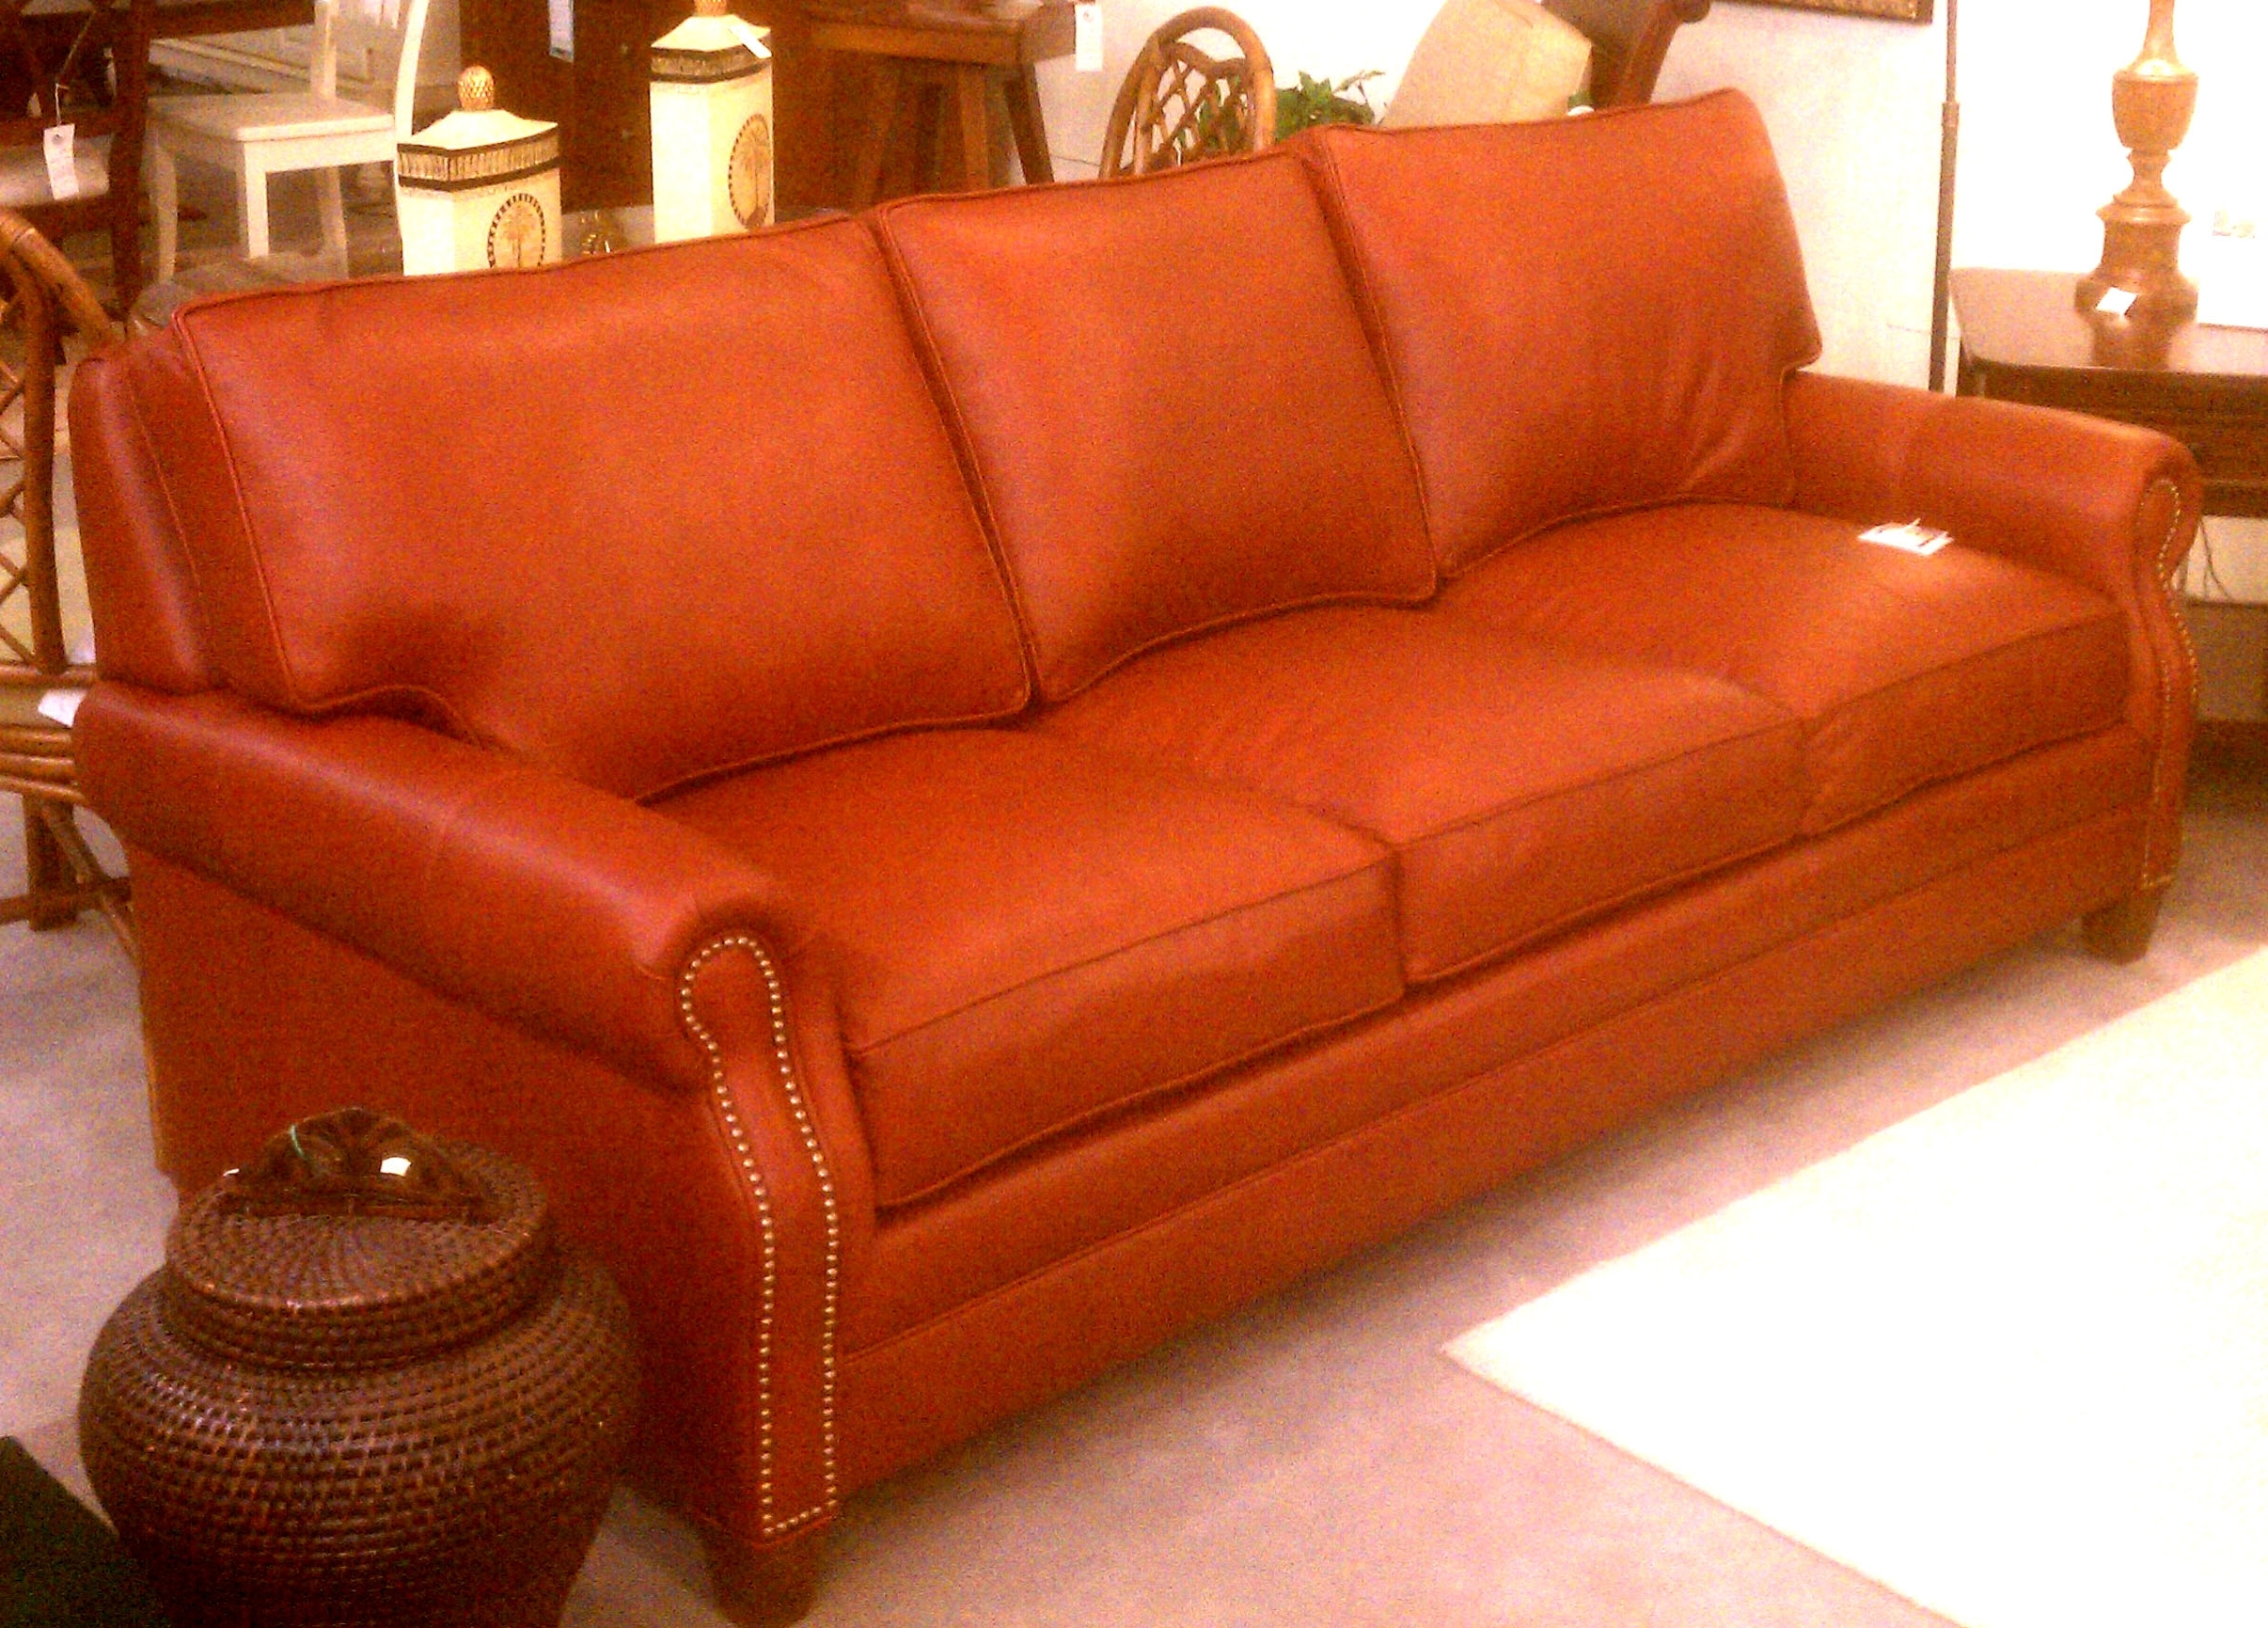 Custom Leather Sofa Dallas Vancouver Furniture Canada Singapore Tx Throughout Most Recent Made In North Carolina Sectional Sofas (View 4 of 20)